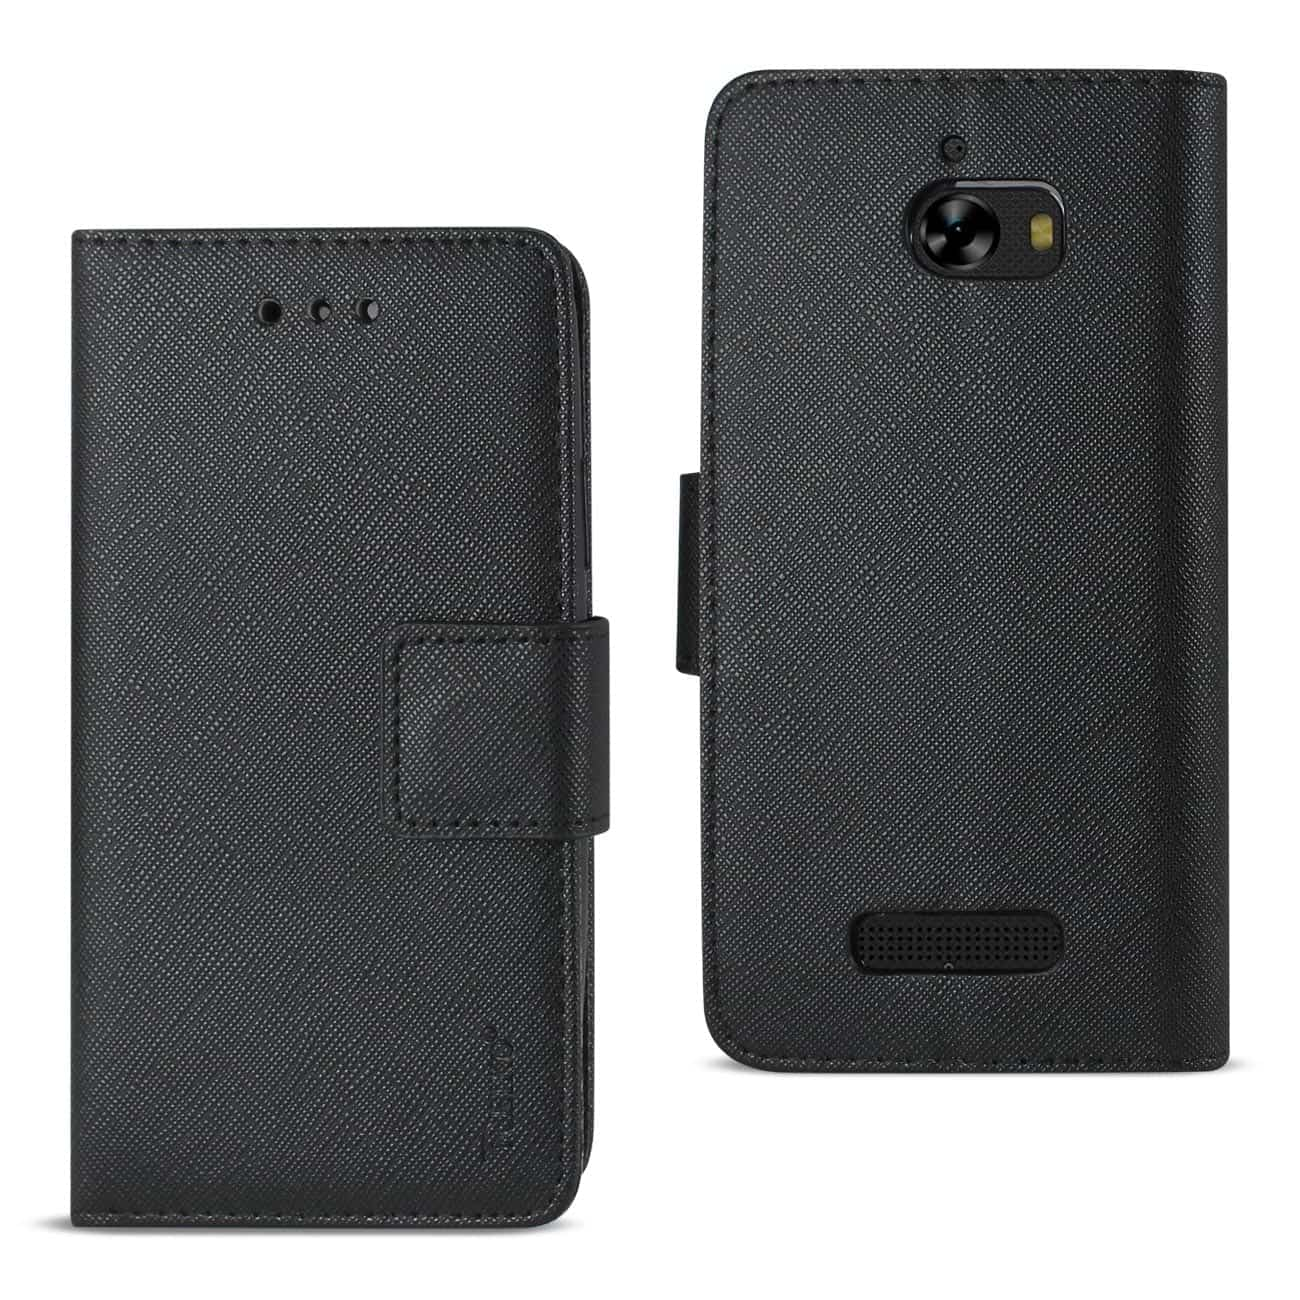 COOLPAD DEFIANT 3-IN-1 WALLET CASE IN BLACK